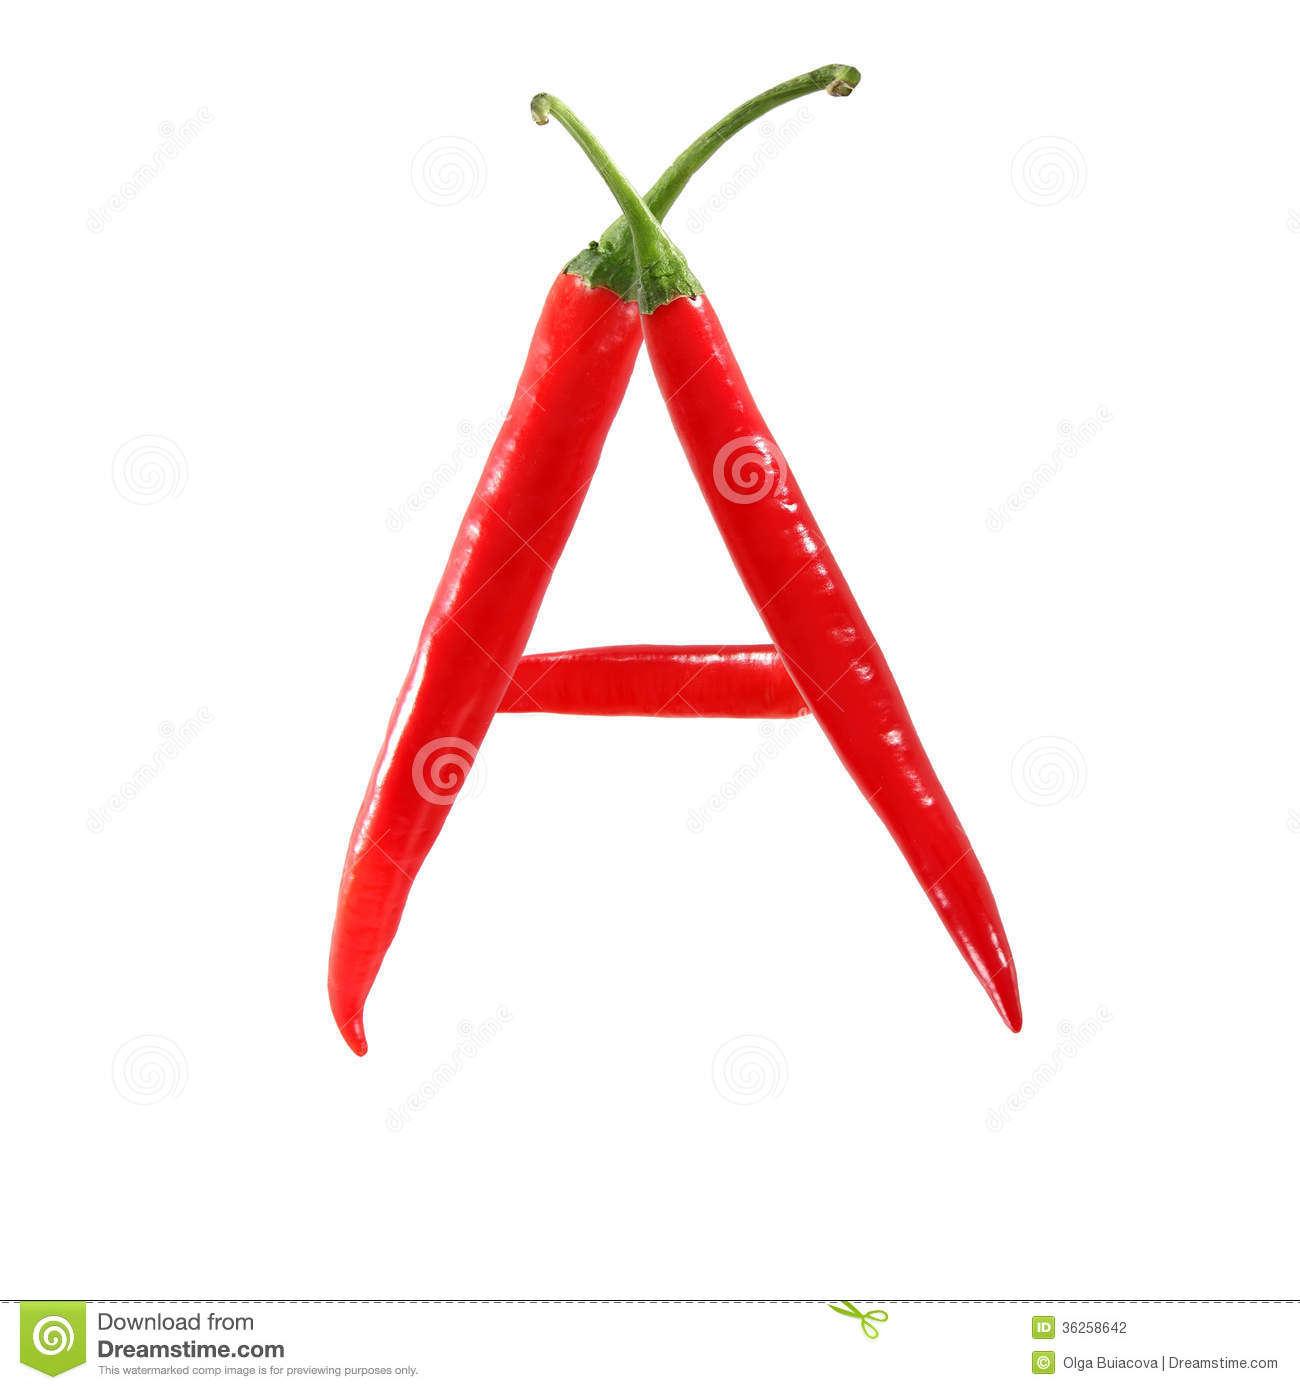 Font Made Of Hot Red Chili Pepper Isolated On White - Letter